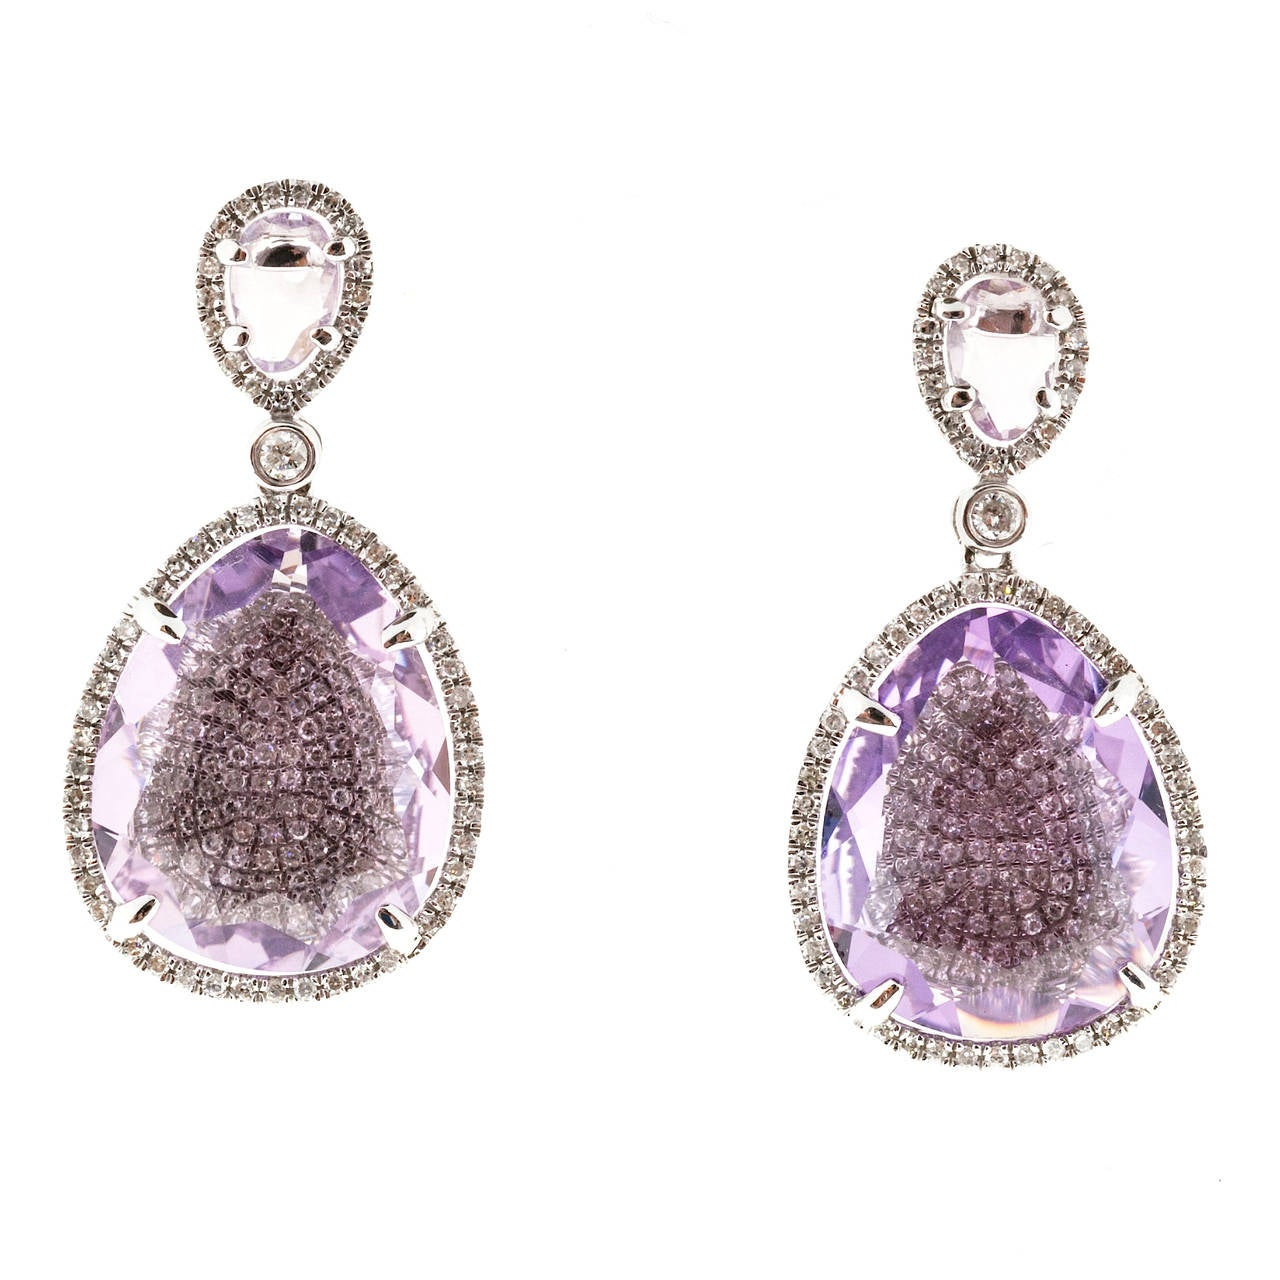 Beautiful White gold 14k dangle earrings totally handmade with 258 Micro Pave diamonds and genuine soft light purple Amethyst.